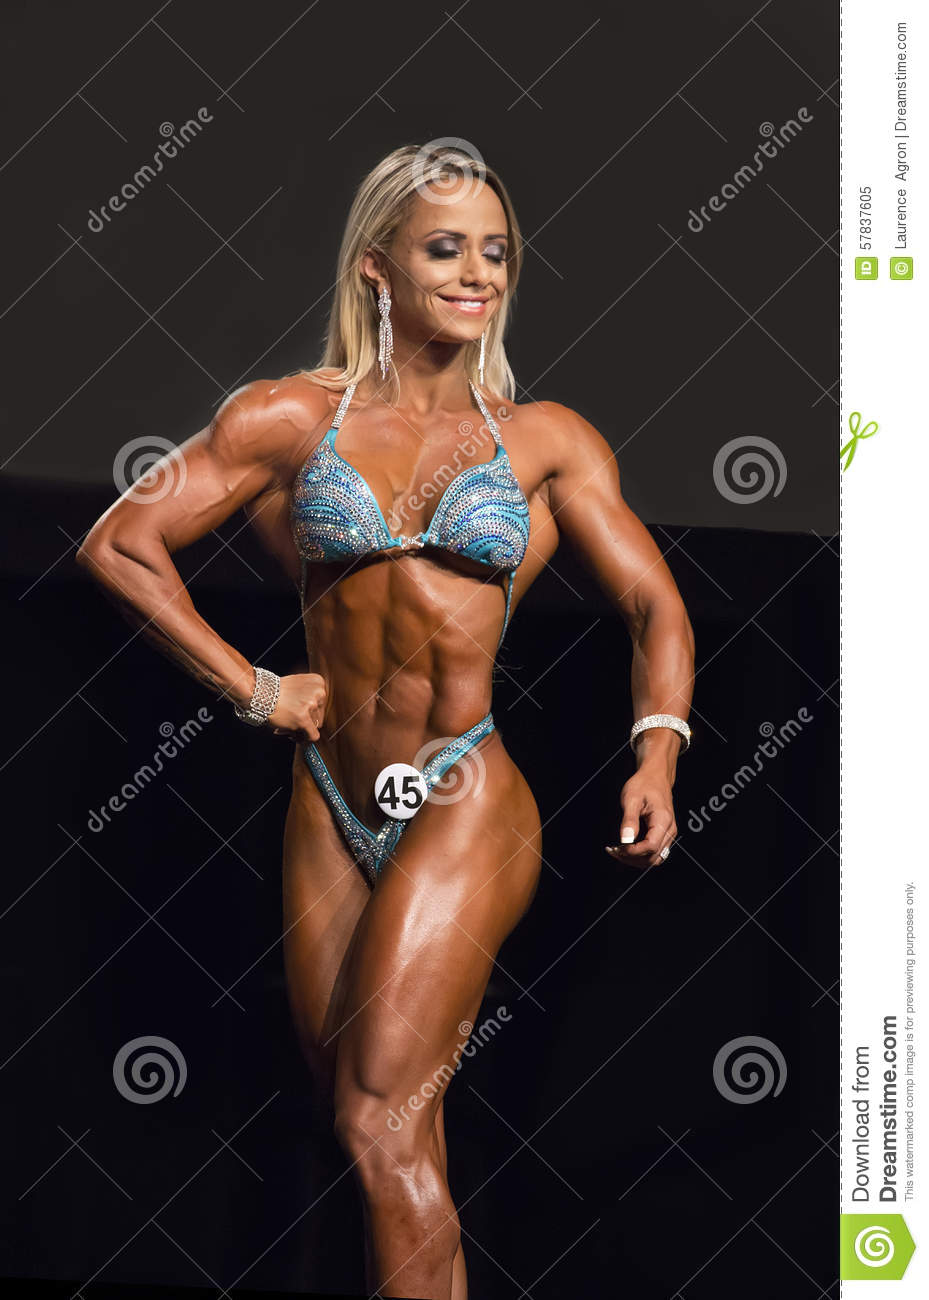 Brazilian bombshell Janaina Ferreira poses at the 2015 IFBB Vancouver  Pro/Am & Expo Figure competition on July 26, 2015.